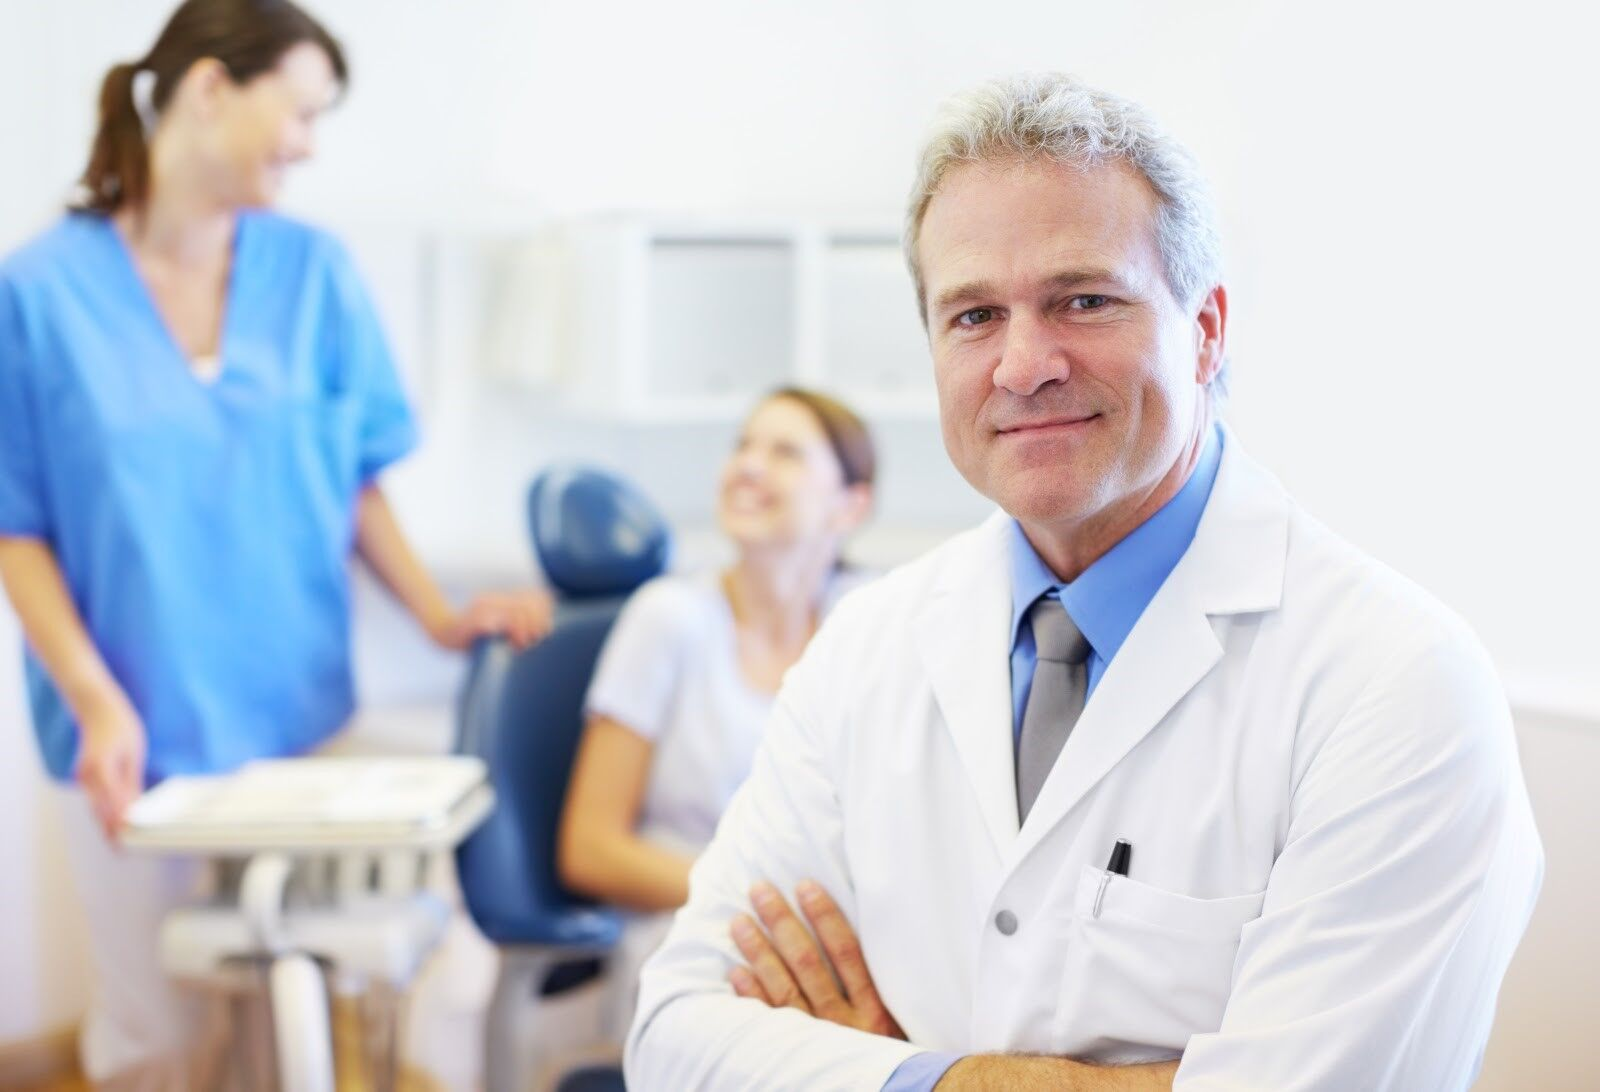 Overland Park KS Dental Practice Services |How a Private Dental Plan Can Boost Your Income